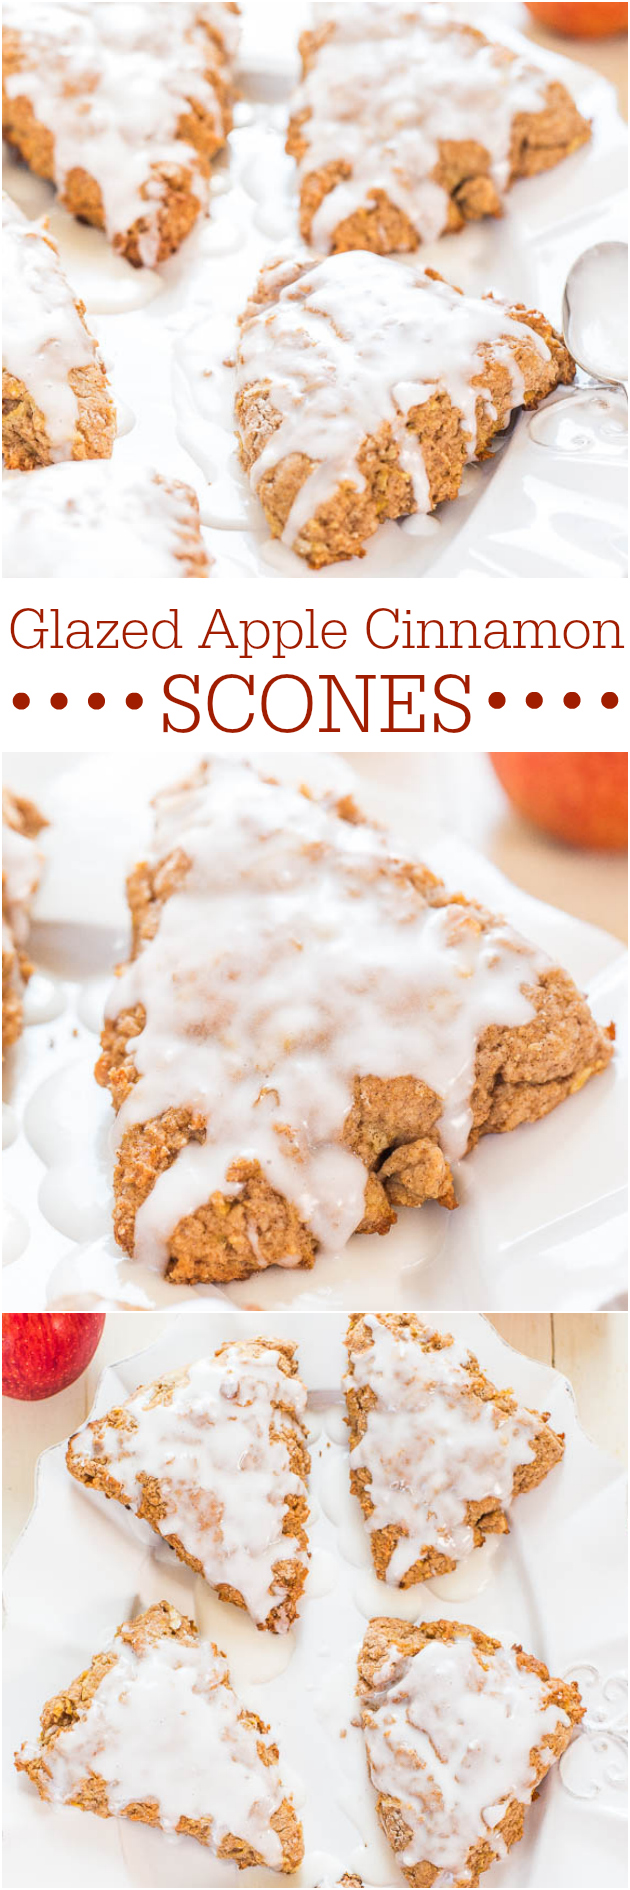 Glazed Apple Scones — Finally, scones that aren't dry! The perfect fall comfort food packed with apples, cinnamon and that glaze!!